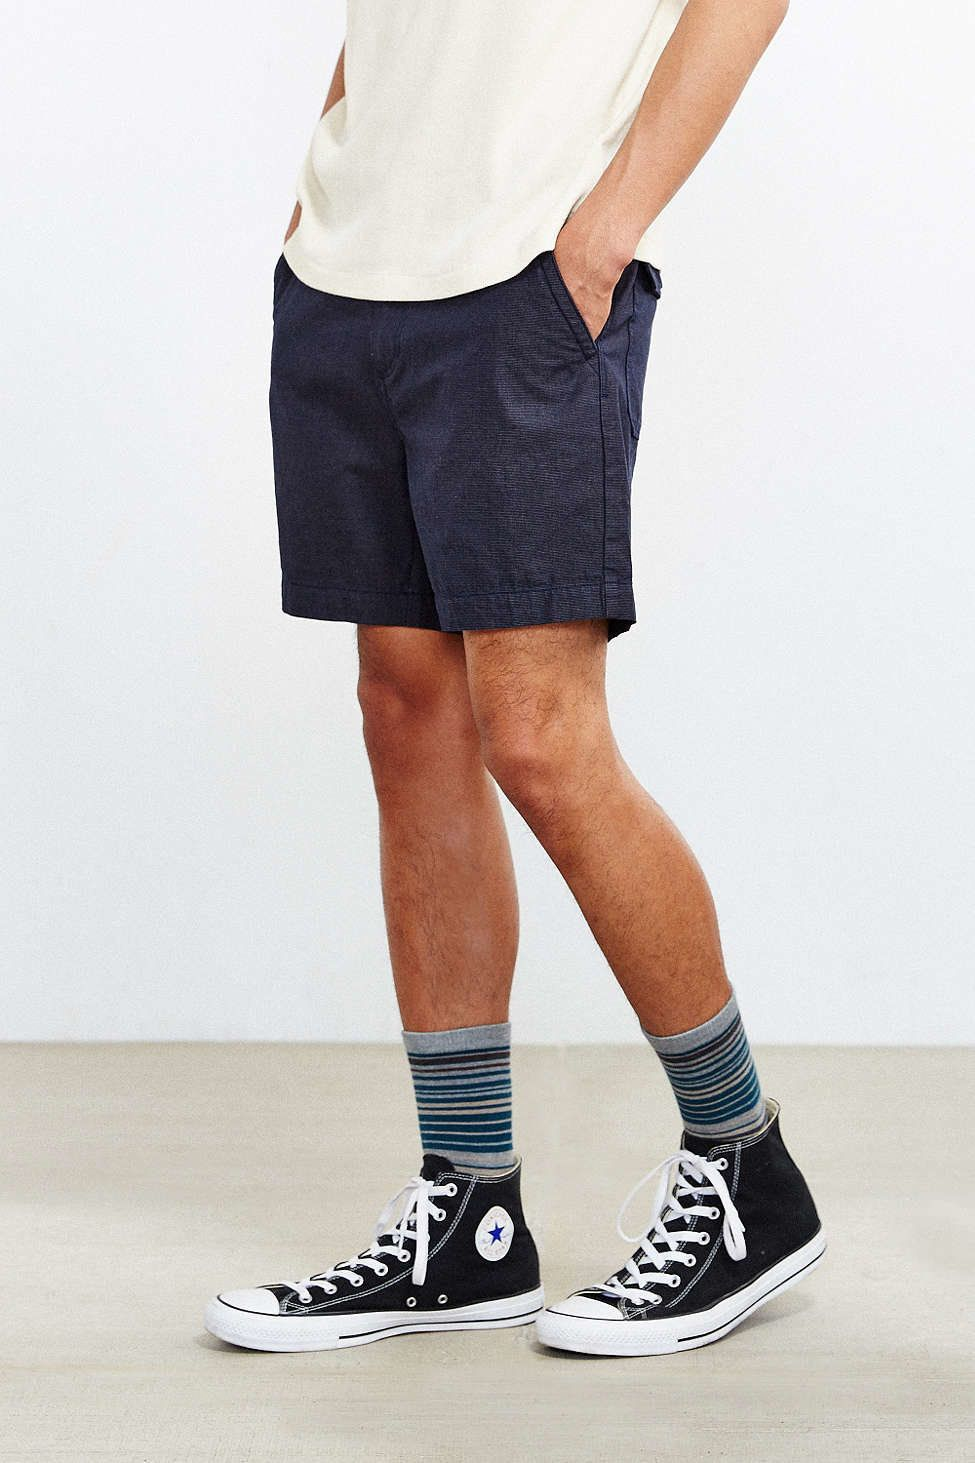 high top chuck taylors with shorts